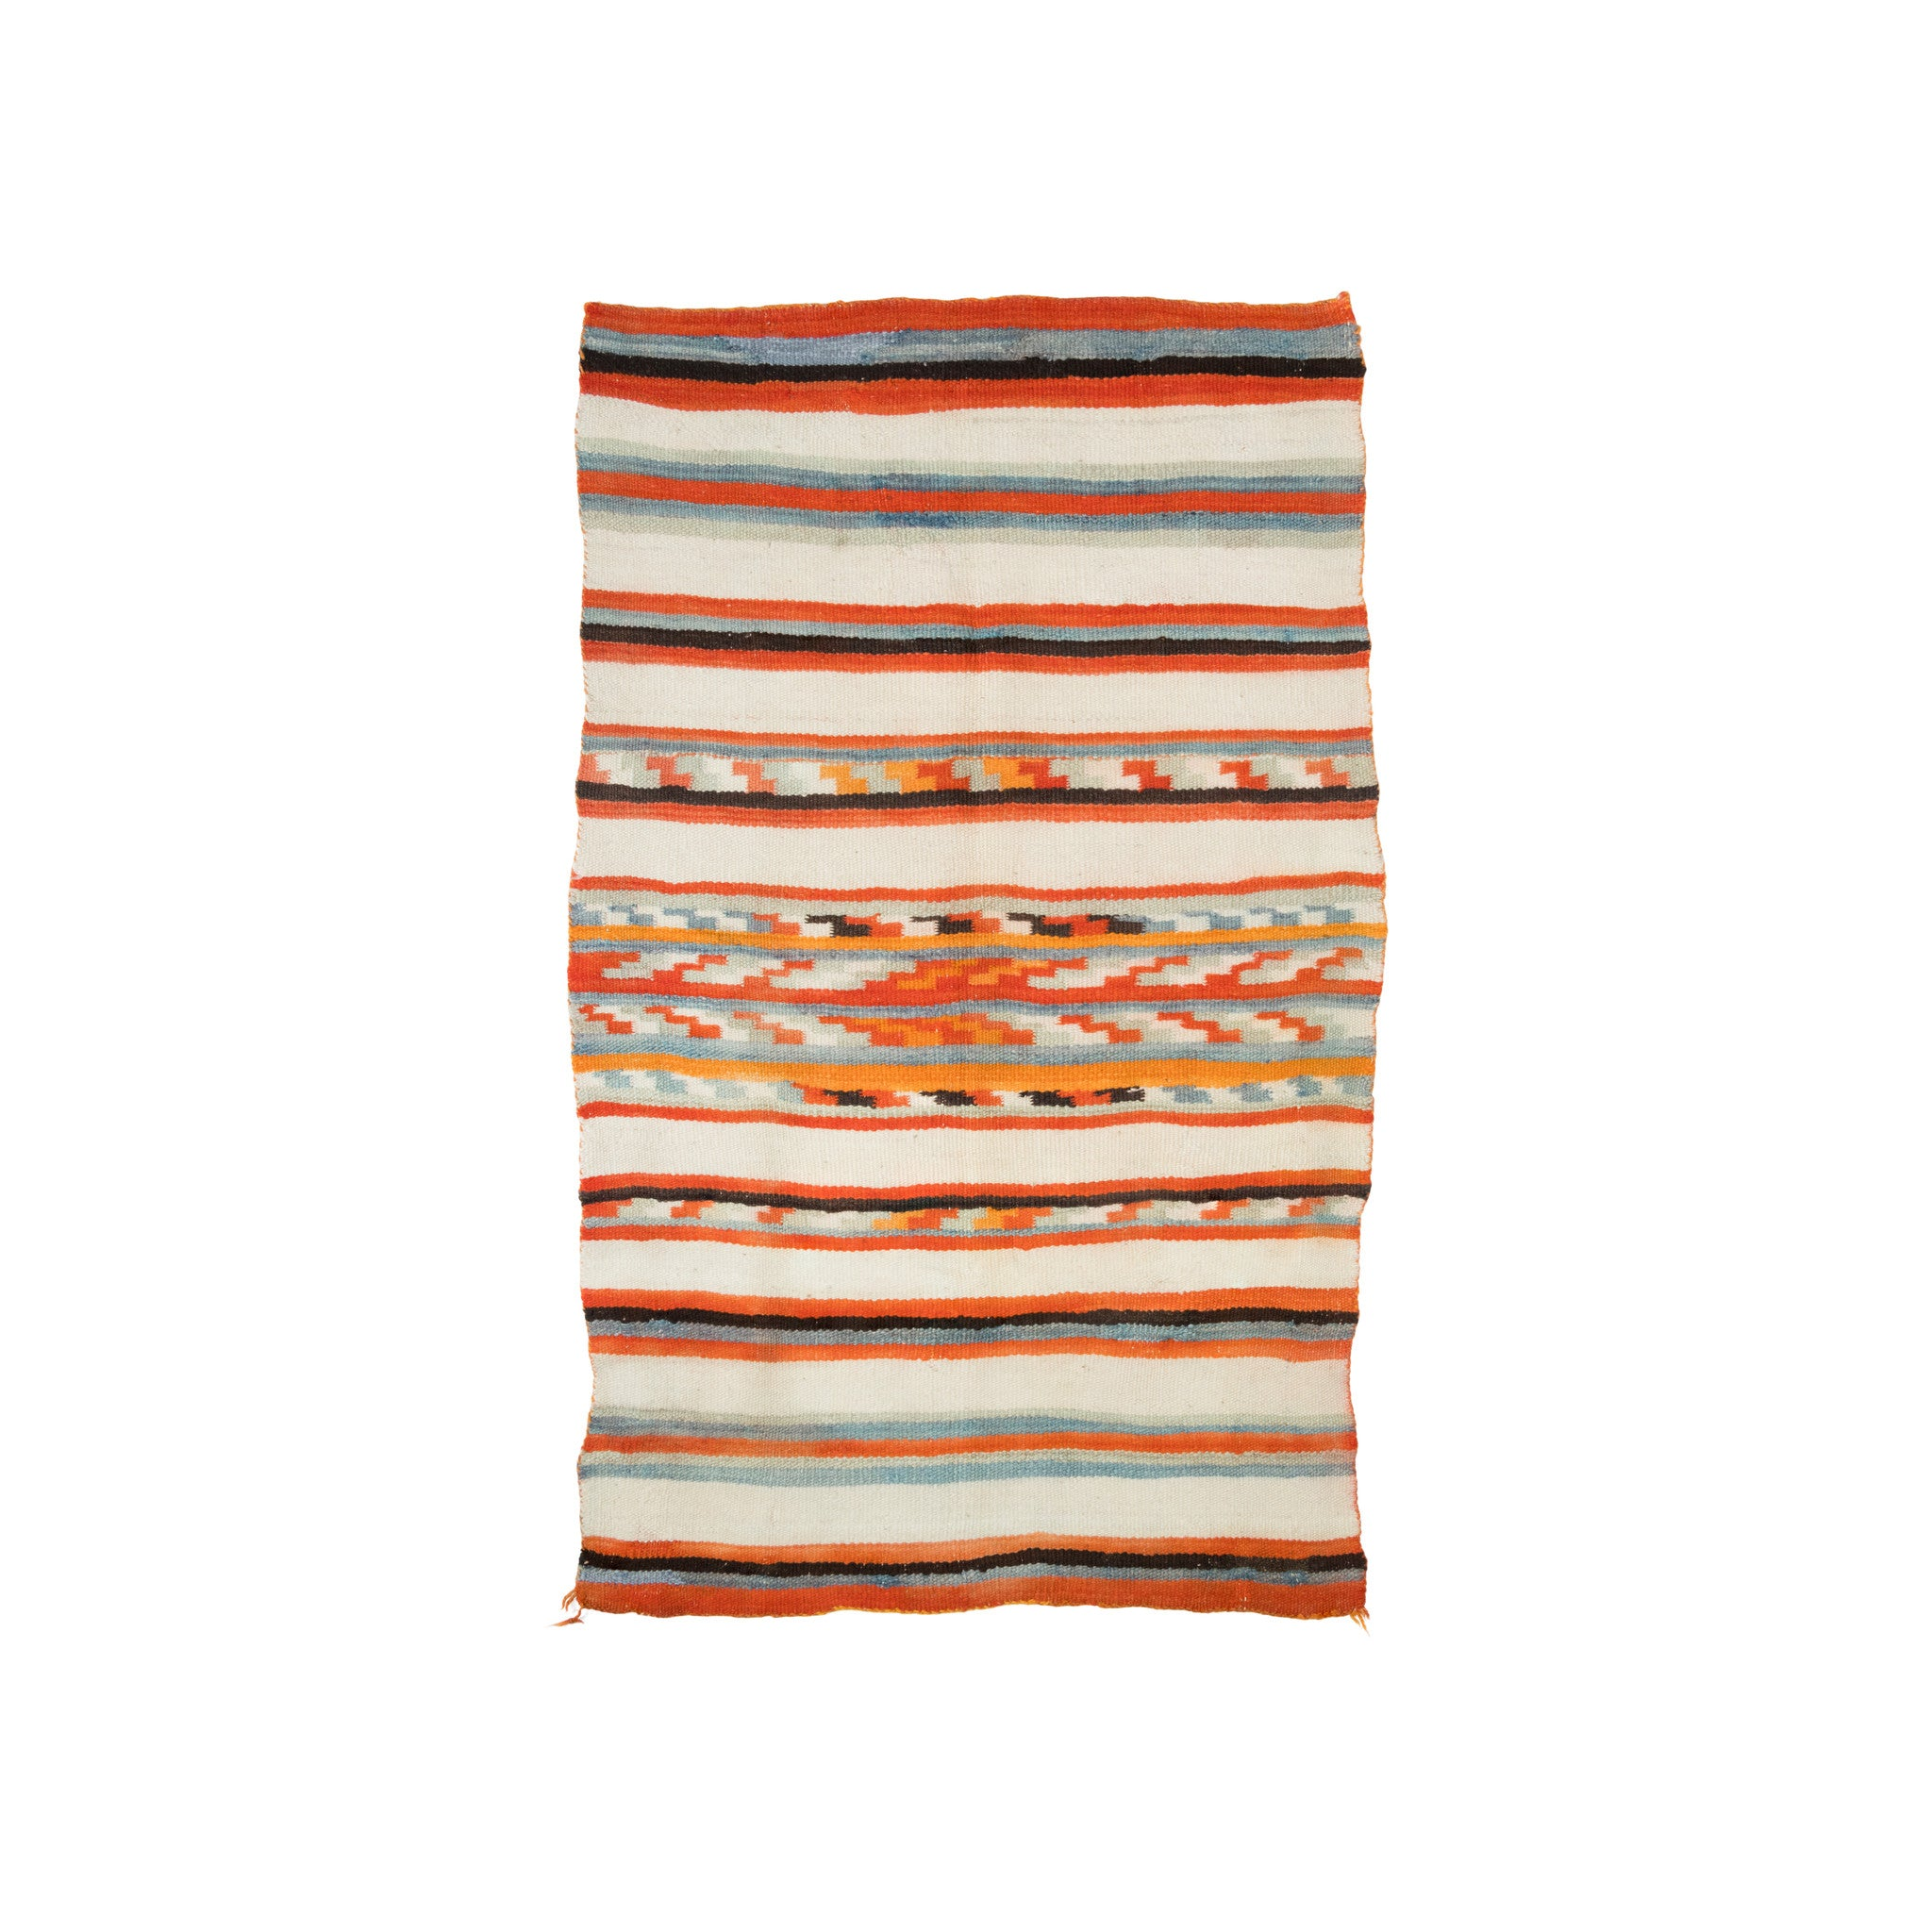 Ladies Transitional Wearing Blanket 4' to 6', blankets, navajo, transitionals, weavings